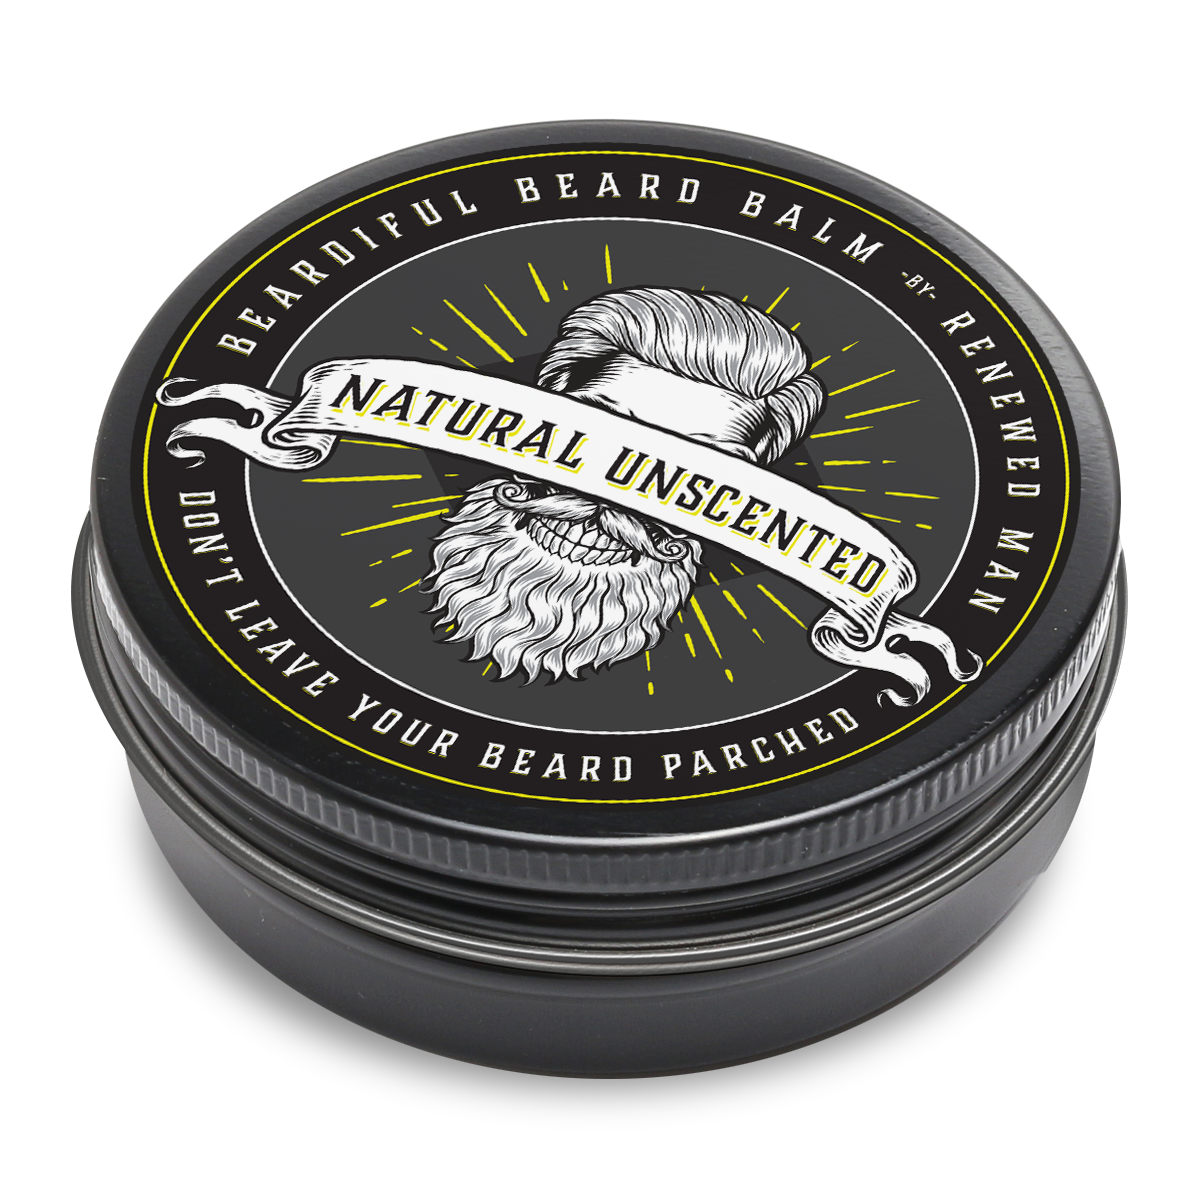 Natural Unscented - Balm